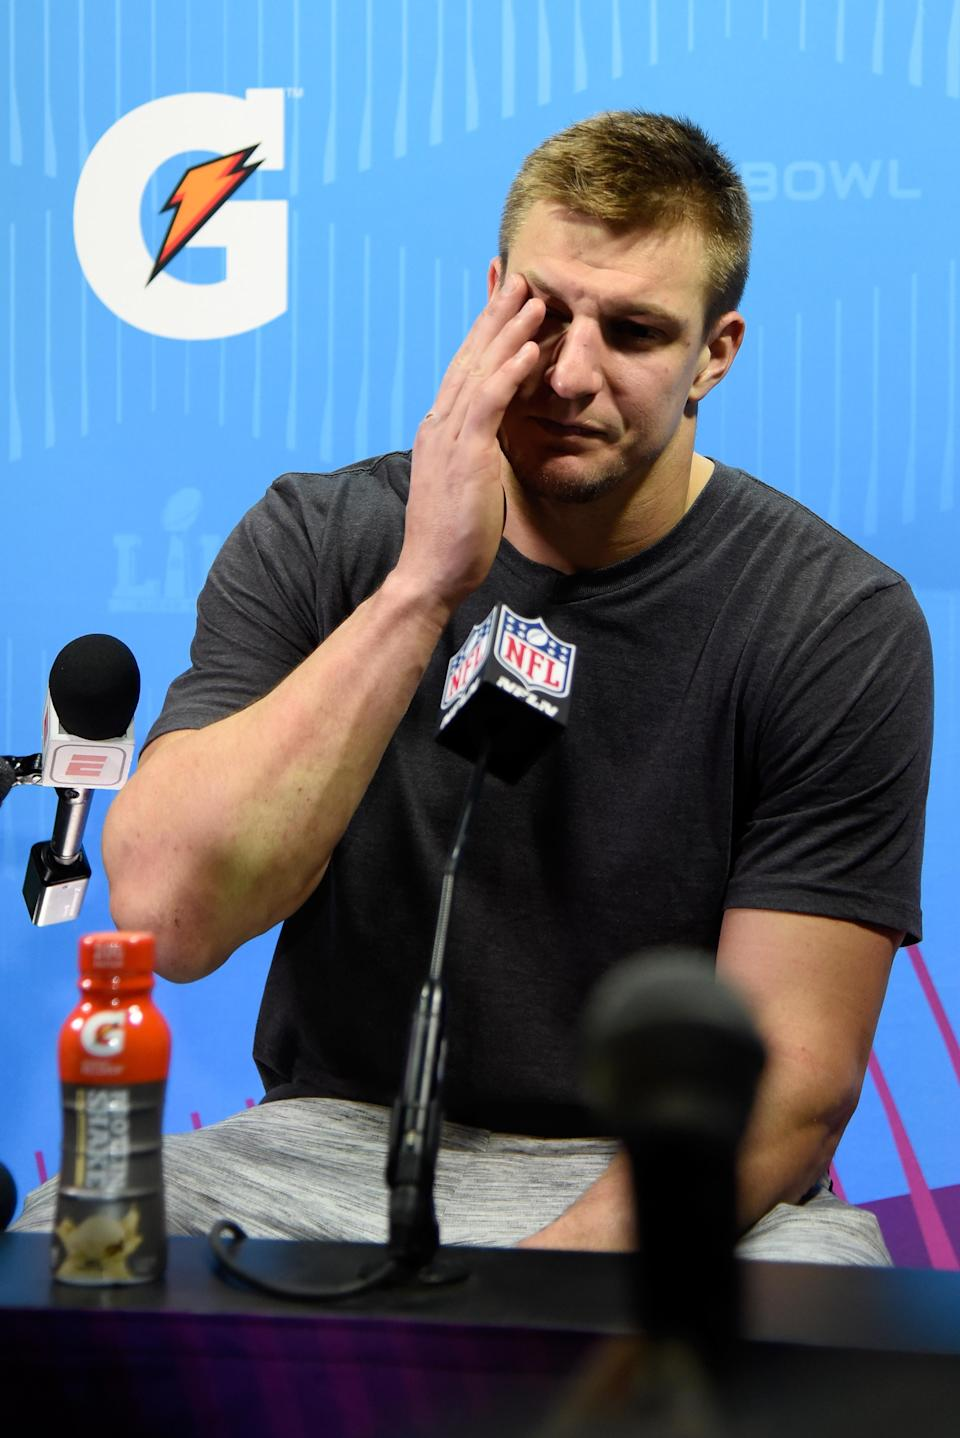 <p>Rob Gronkowski #87 of the New England Patriots speaks to the media after losing to the Philadelphia Eagles 41-33 in Super Bowl LII at U.S. Bank Stadium on February 4, 2018 in Minneapolis, Minnesota. (Photo by Larry Busacca/Getty Images) </p>